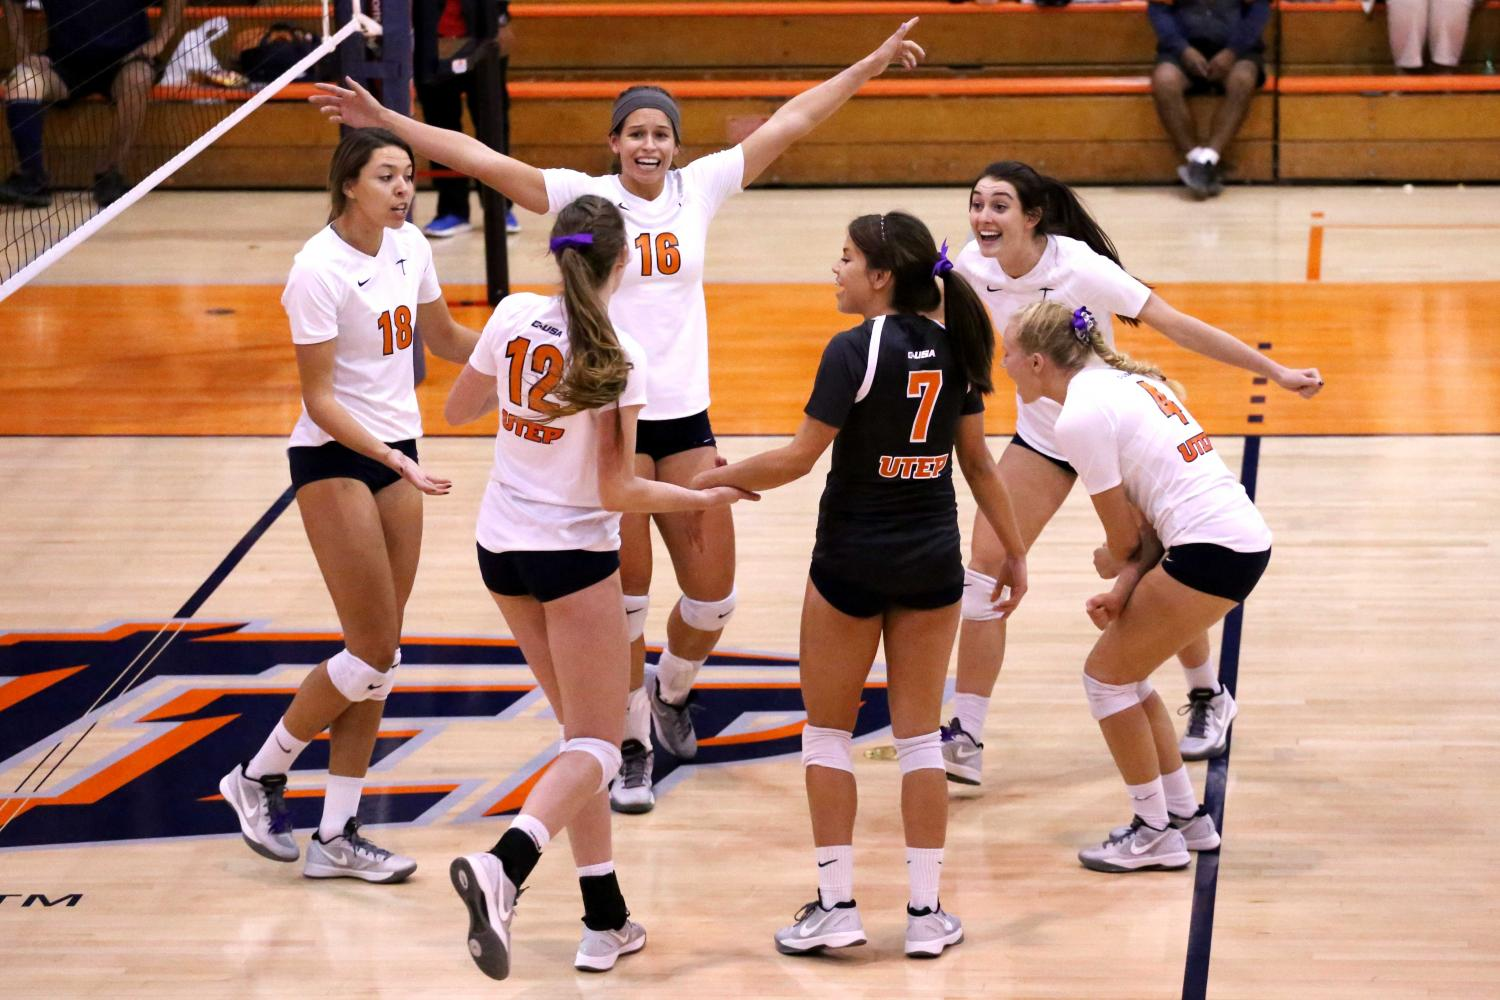 The UTEP Volleyball team will play at home for the first time in 2017 against Texas Tech.